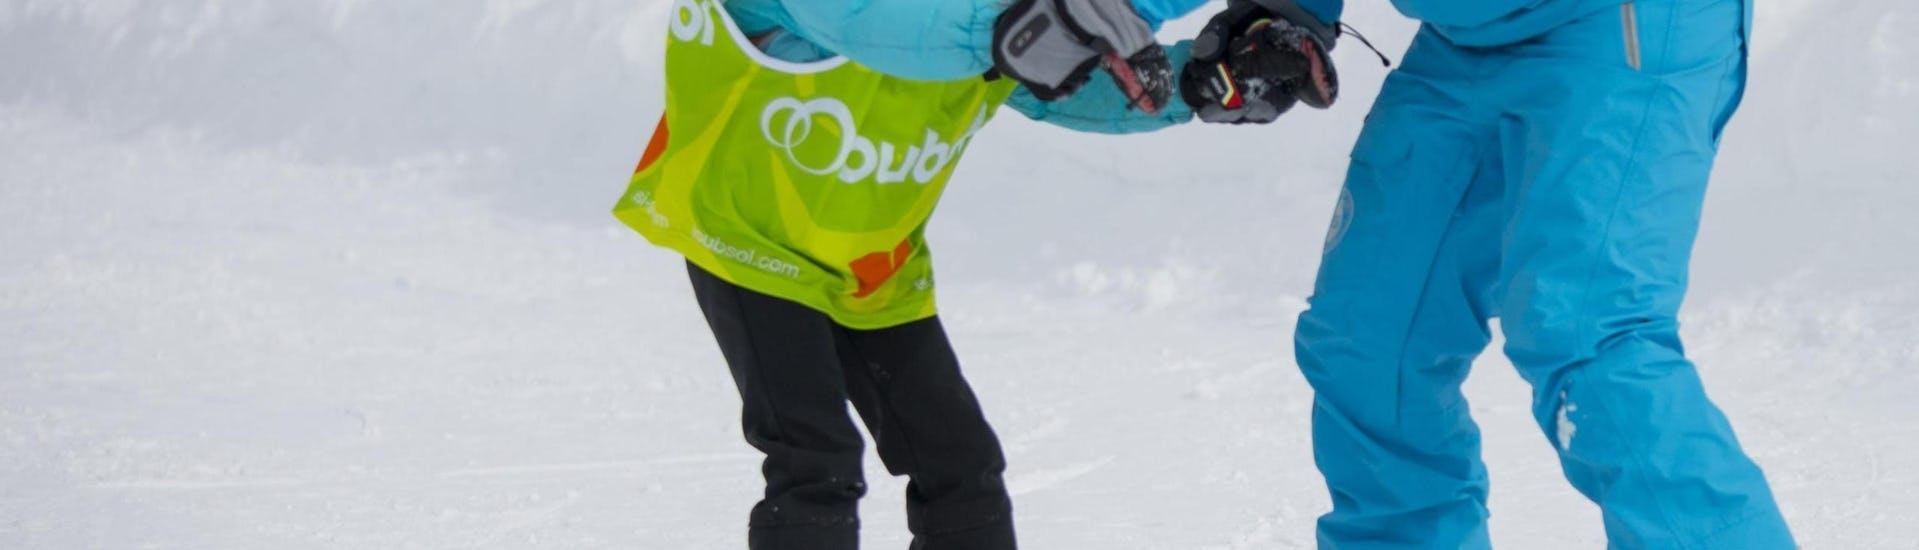 A young snowboarder is learning how to keep their balance on their board with the help of an snowboard instructor from the 333 ski school in Tignes during their Private Snowboarding Lessons - Tignes.